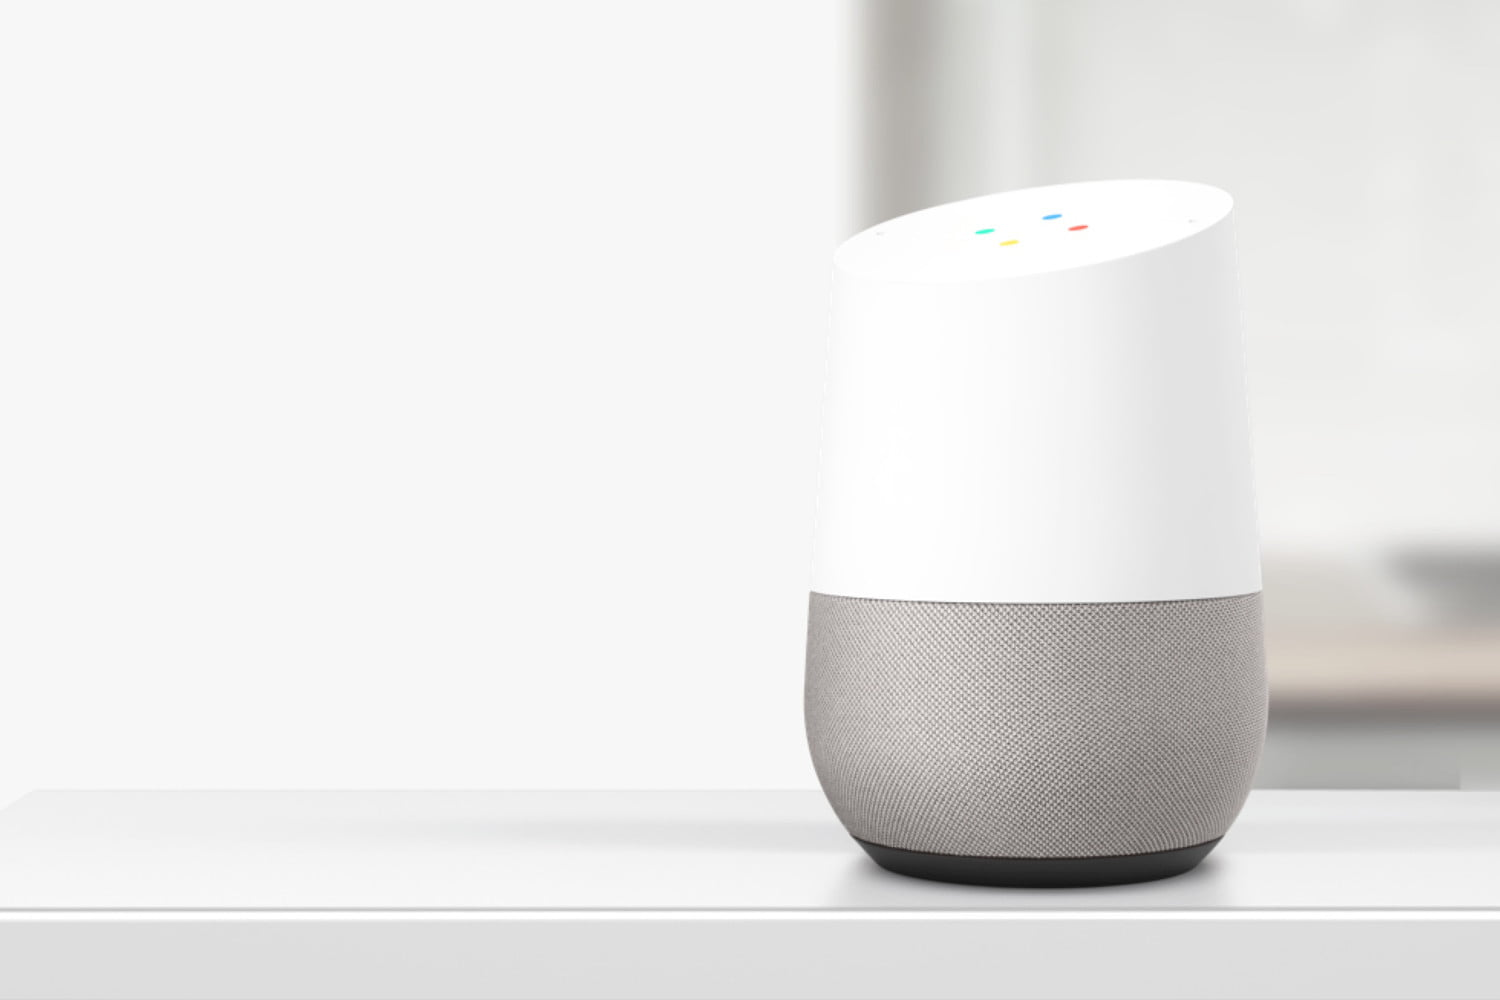 google-home-security-thumb-2-1500x1000.jpg